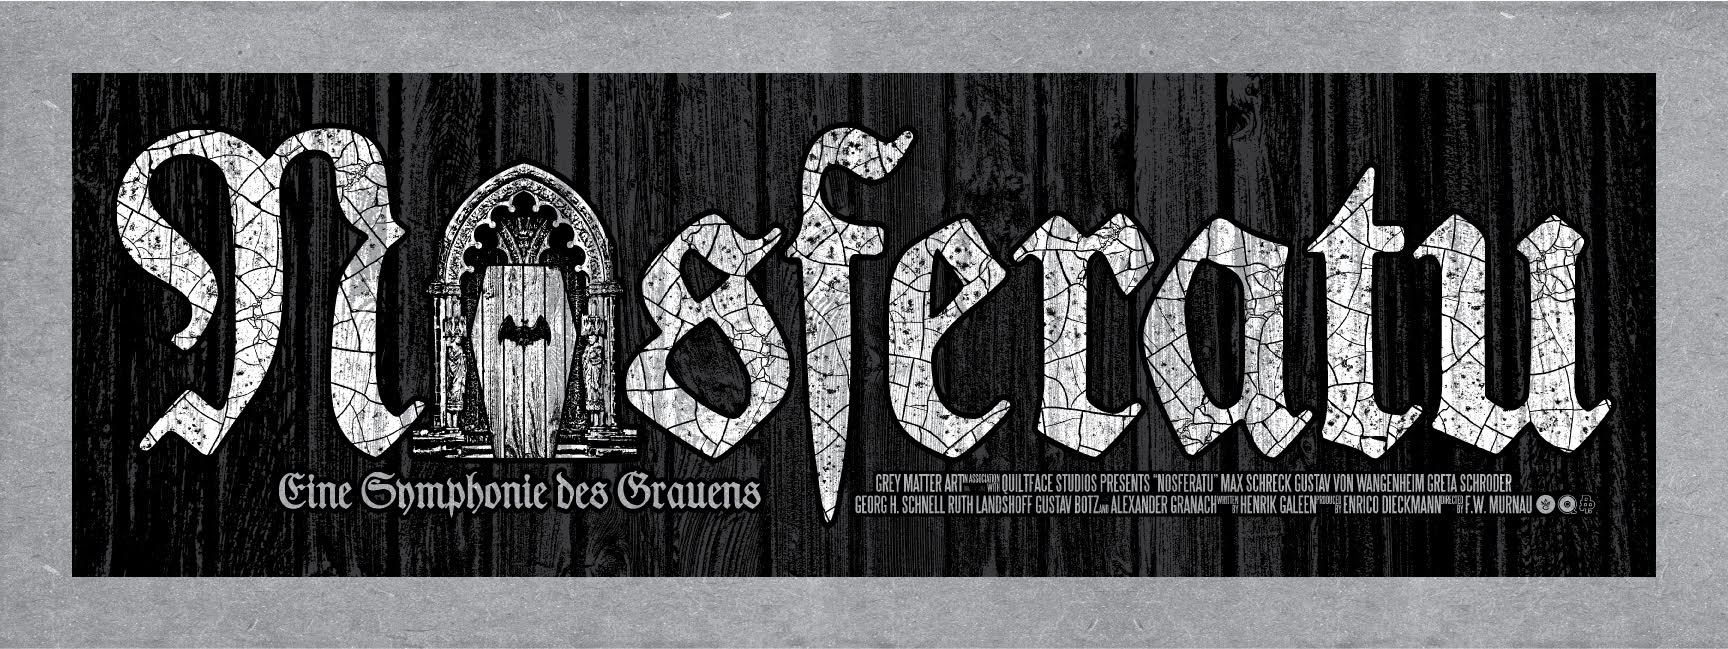 """Nosferatu"" by Chris Garofalo.  24"" x 9"" 3-color Screenprint w/ GID with on Mr. French Packing Chip KraftTone.  Ed of 40 S/N.  $25 (Castle)"